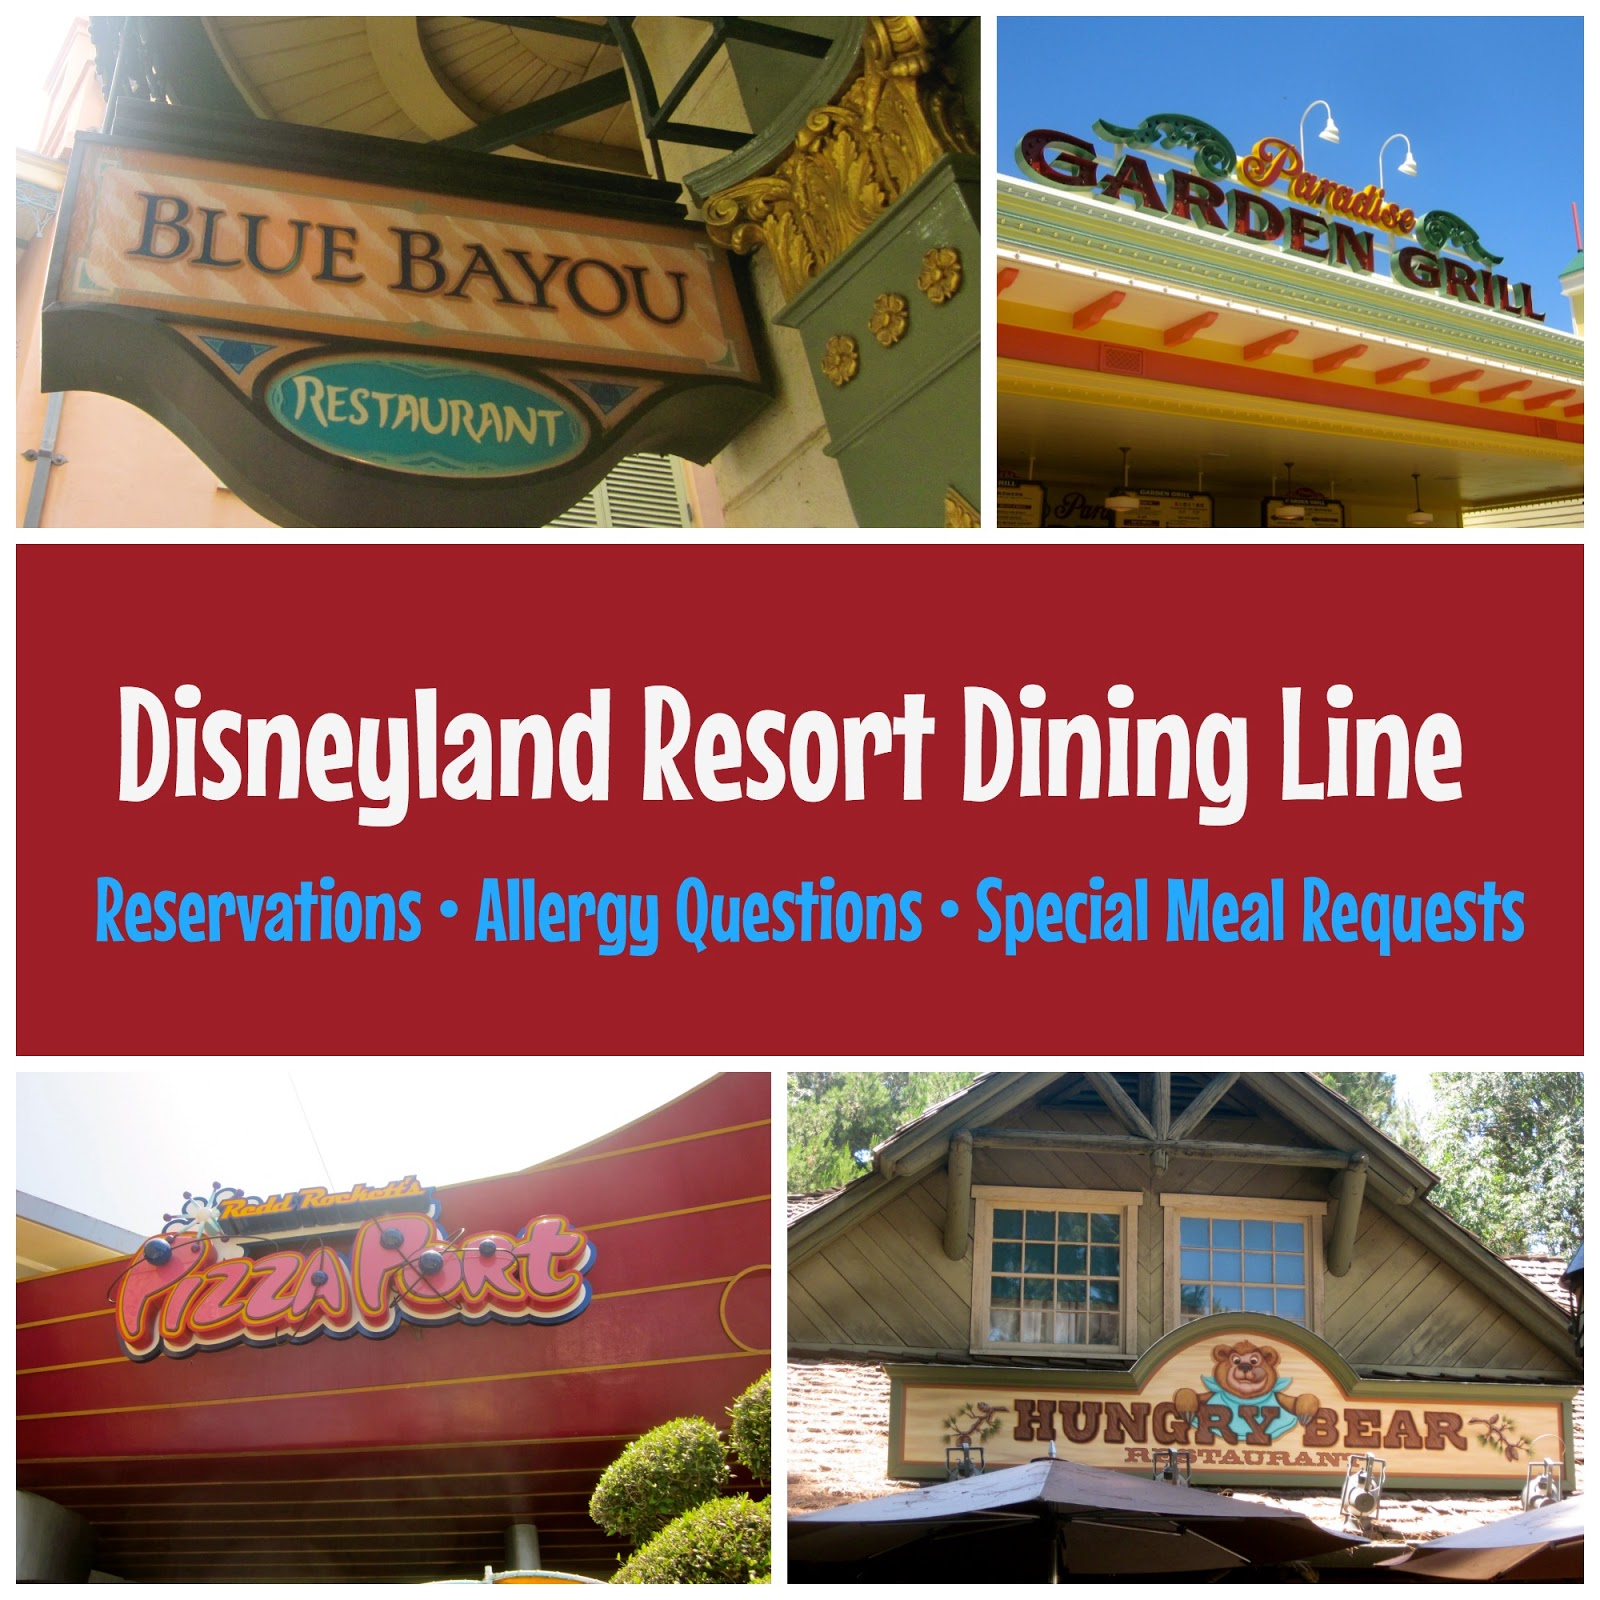 The Disneyland Resort Dining Line And No Show Reservation Fees Babes In Disneyland